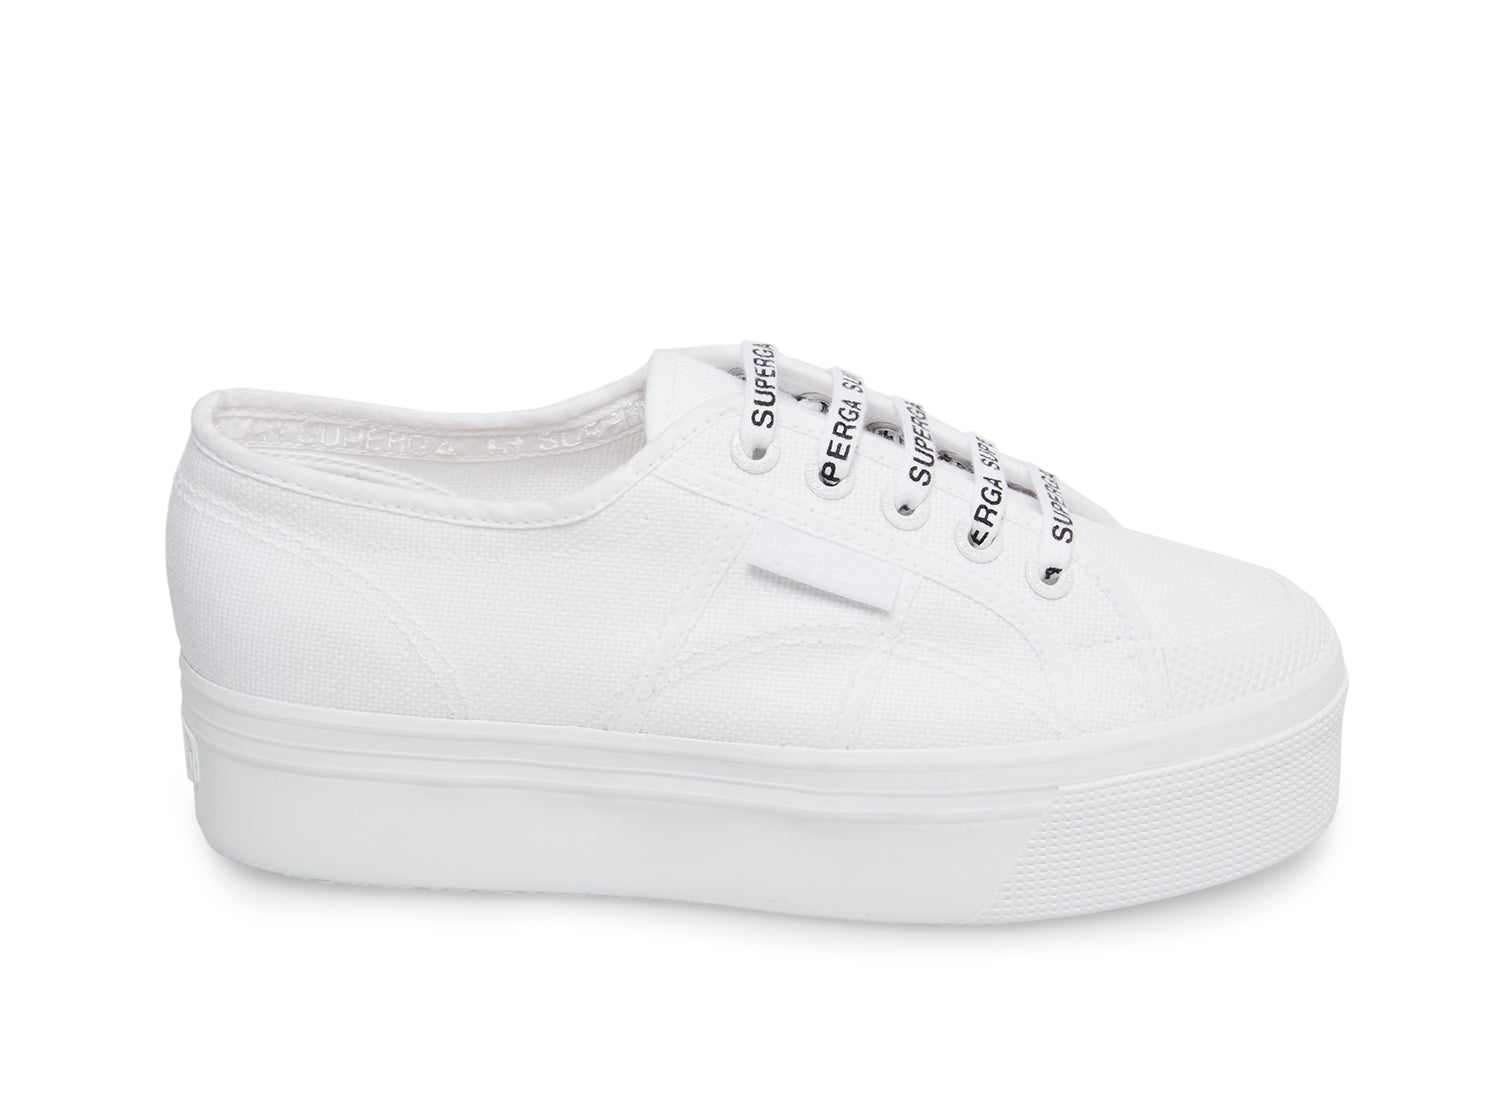 Superga 2423 cotu white fabric side